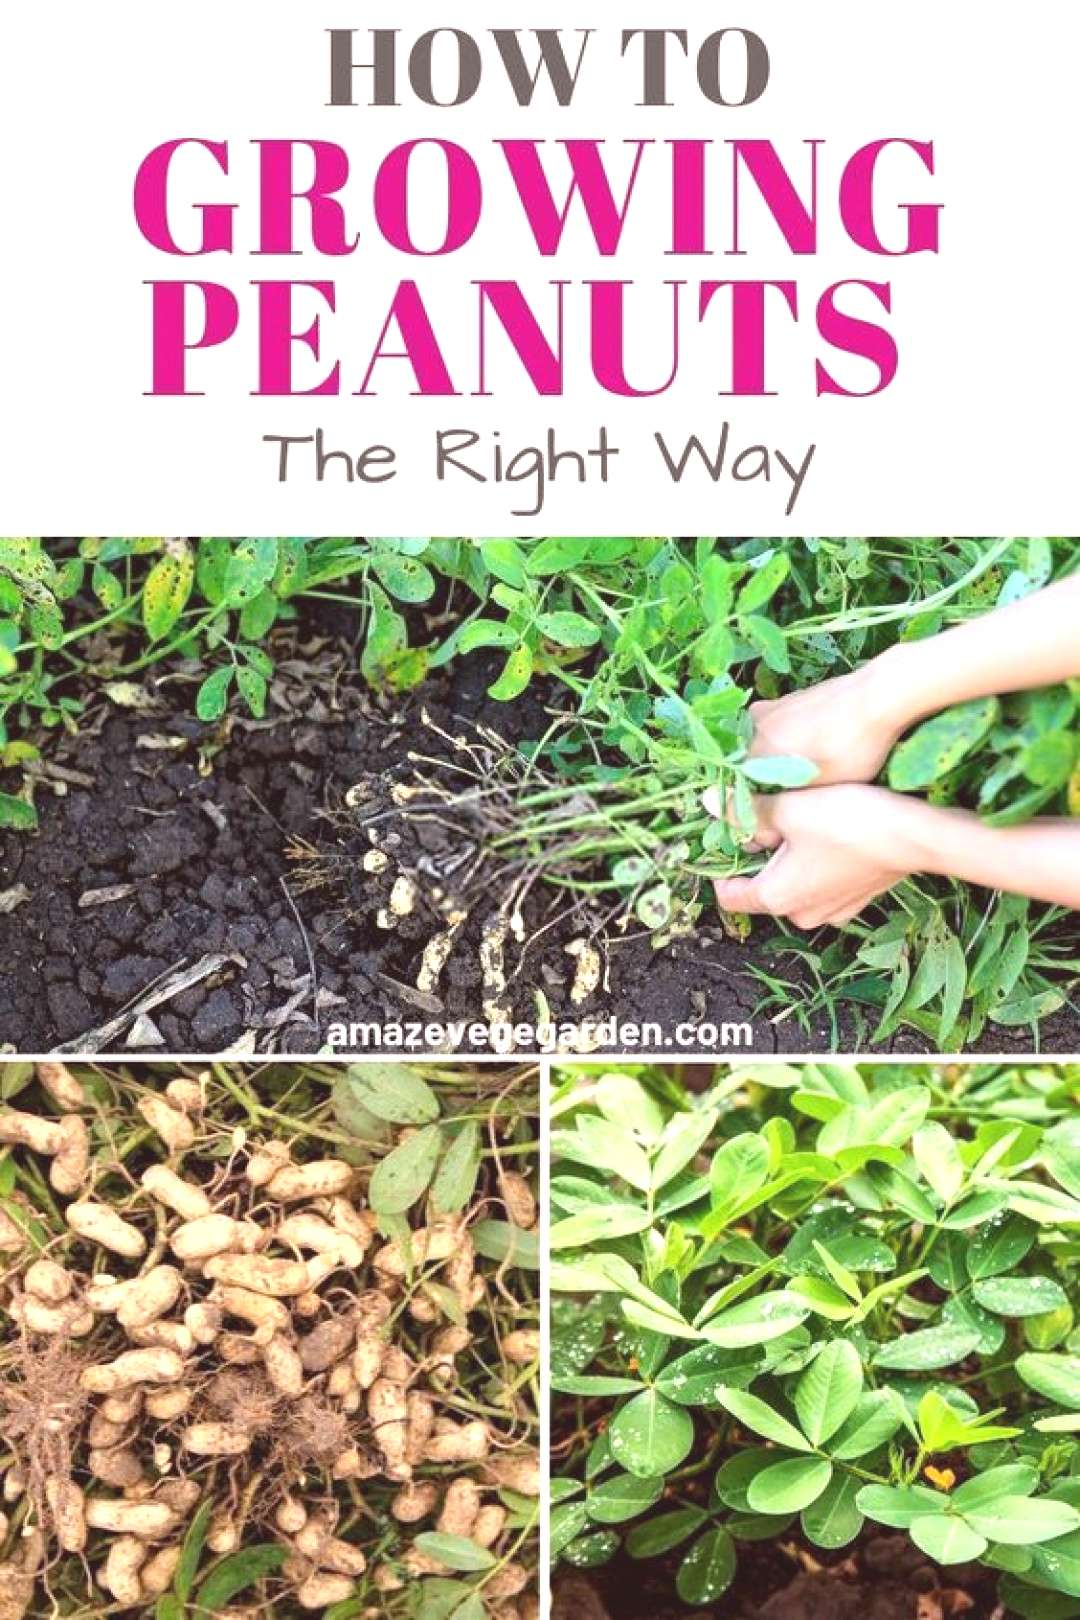 55 Step by step tips for how  Step by step tips for how to growing your own peanuts in your garden!